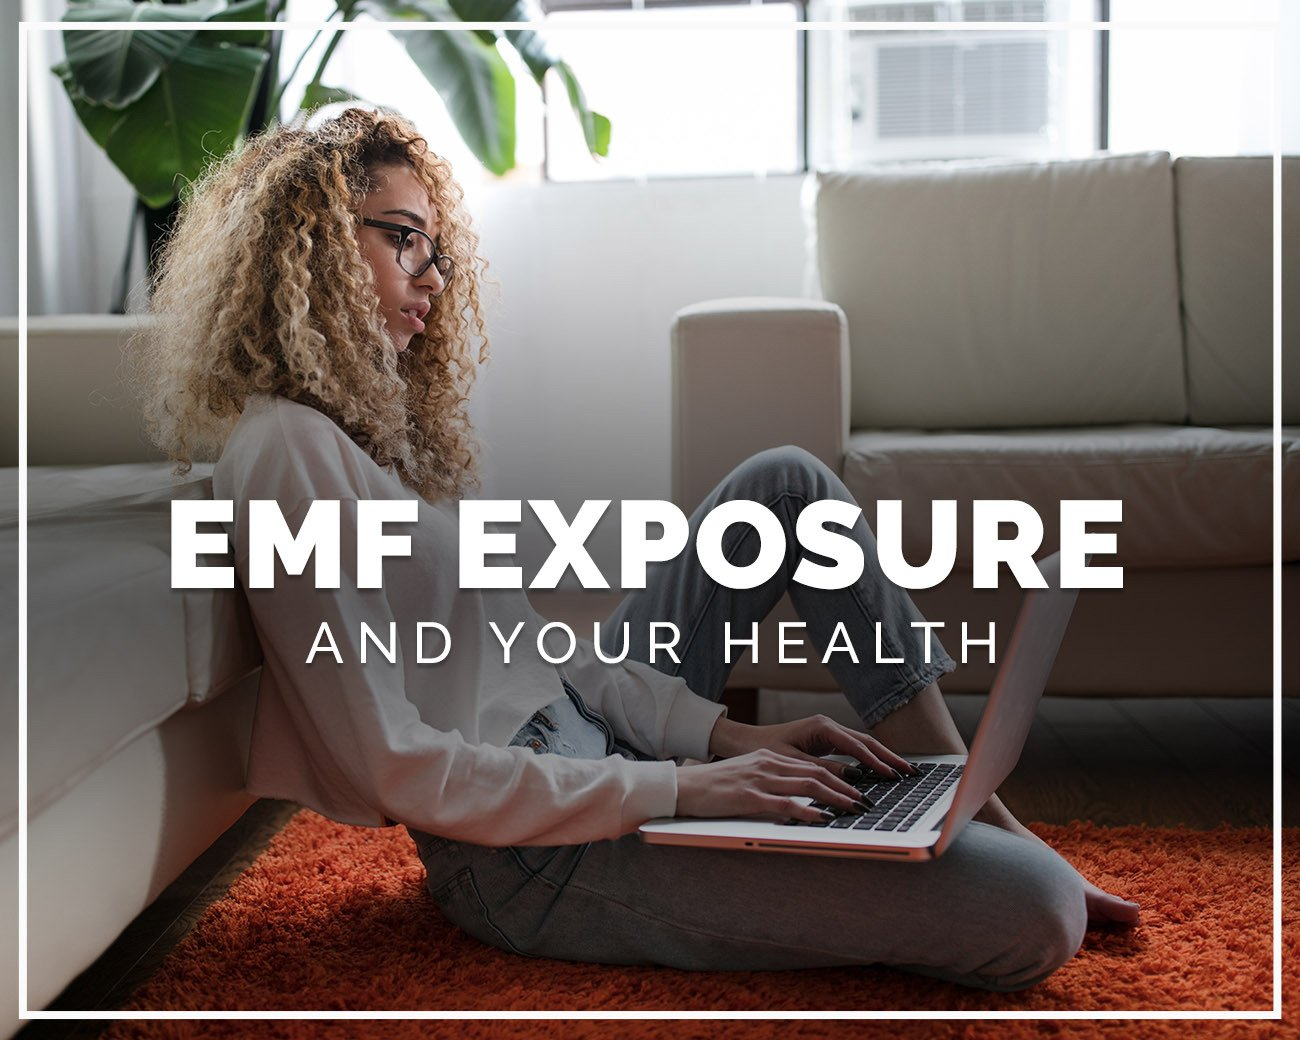 EMF exposure and the potential health hazards